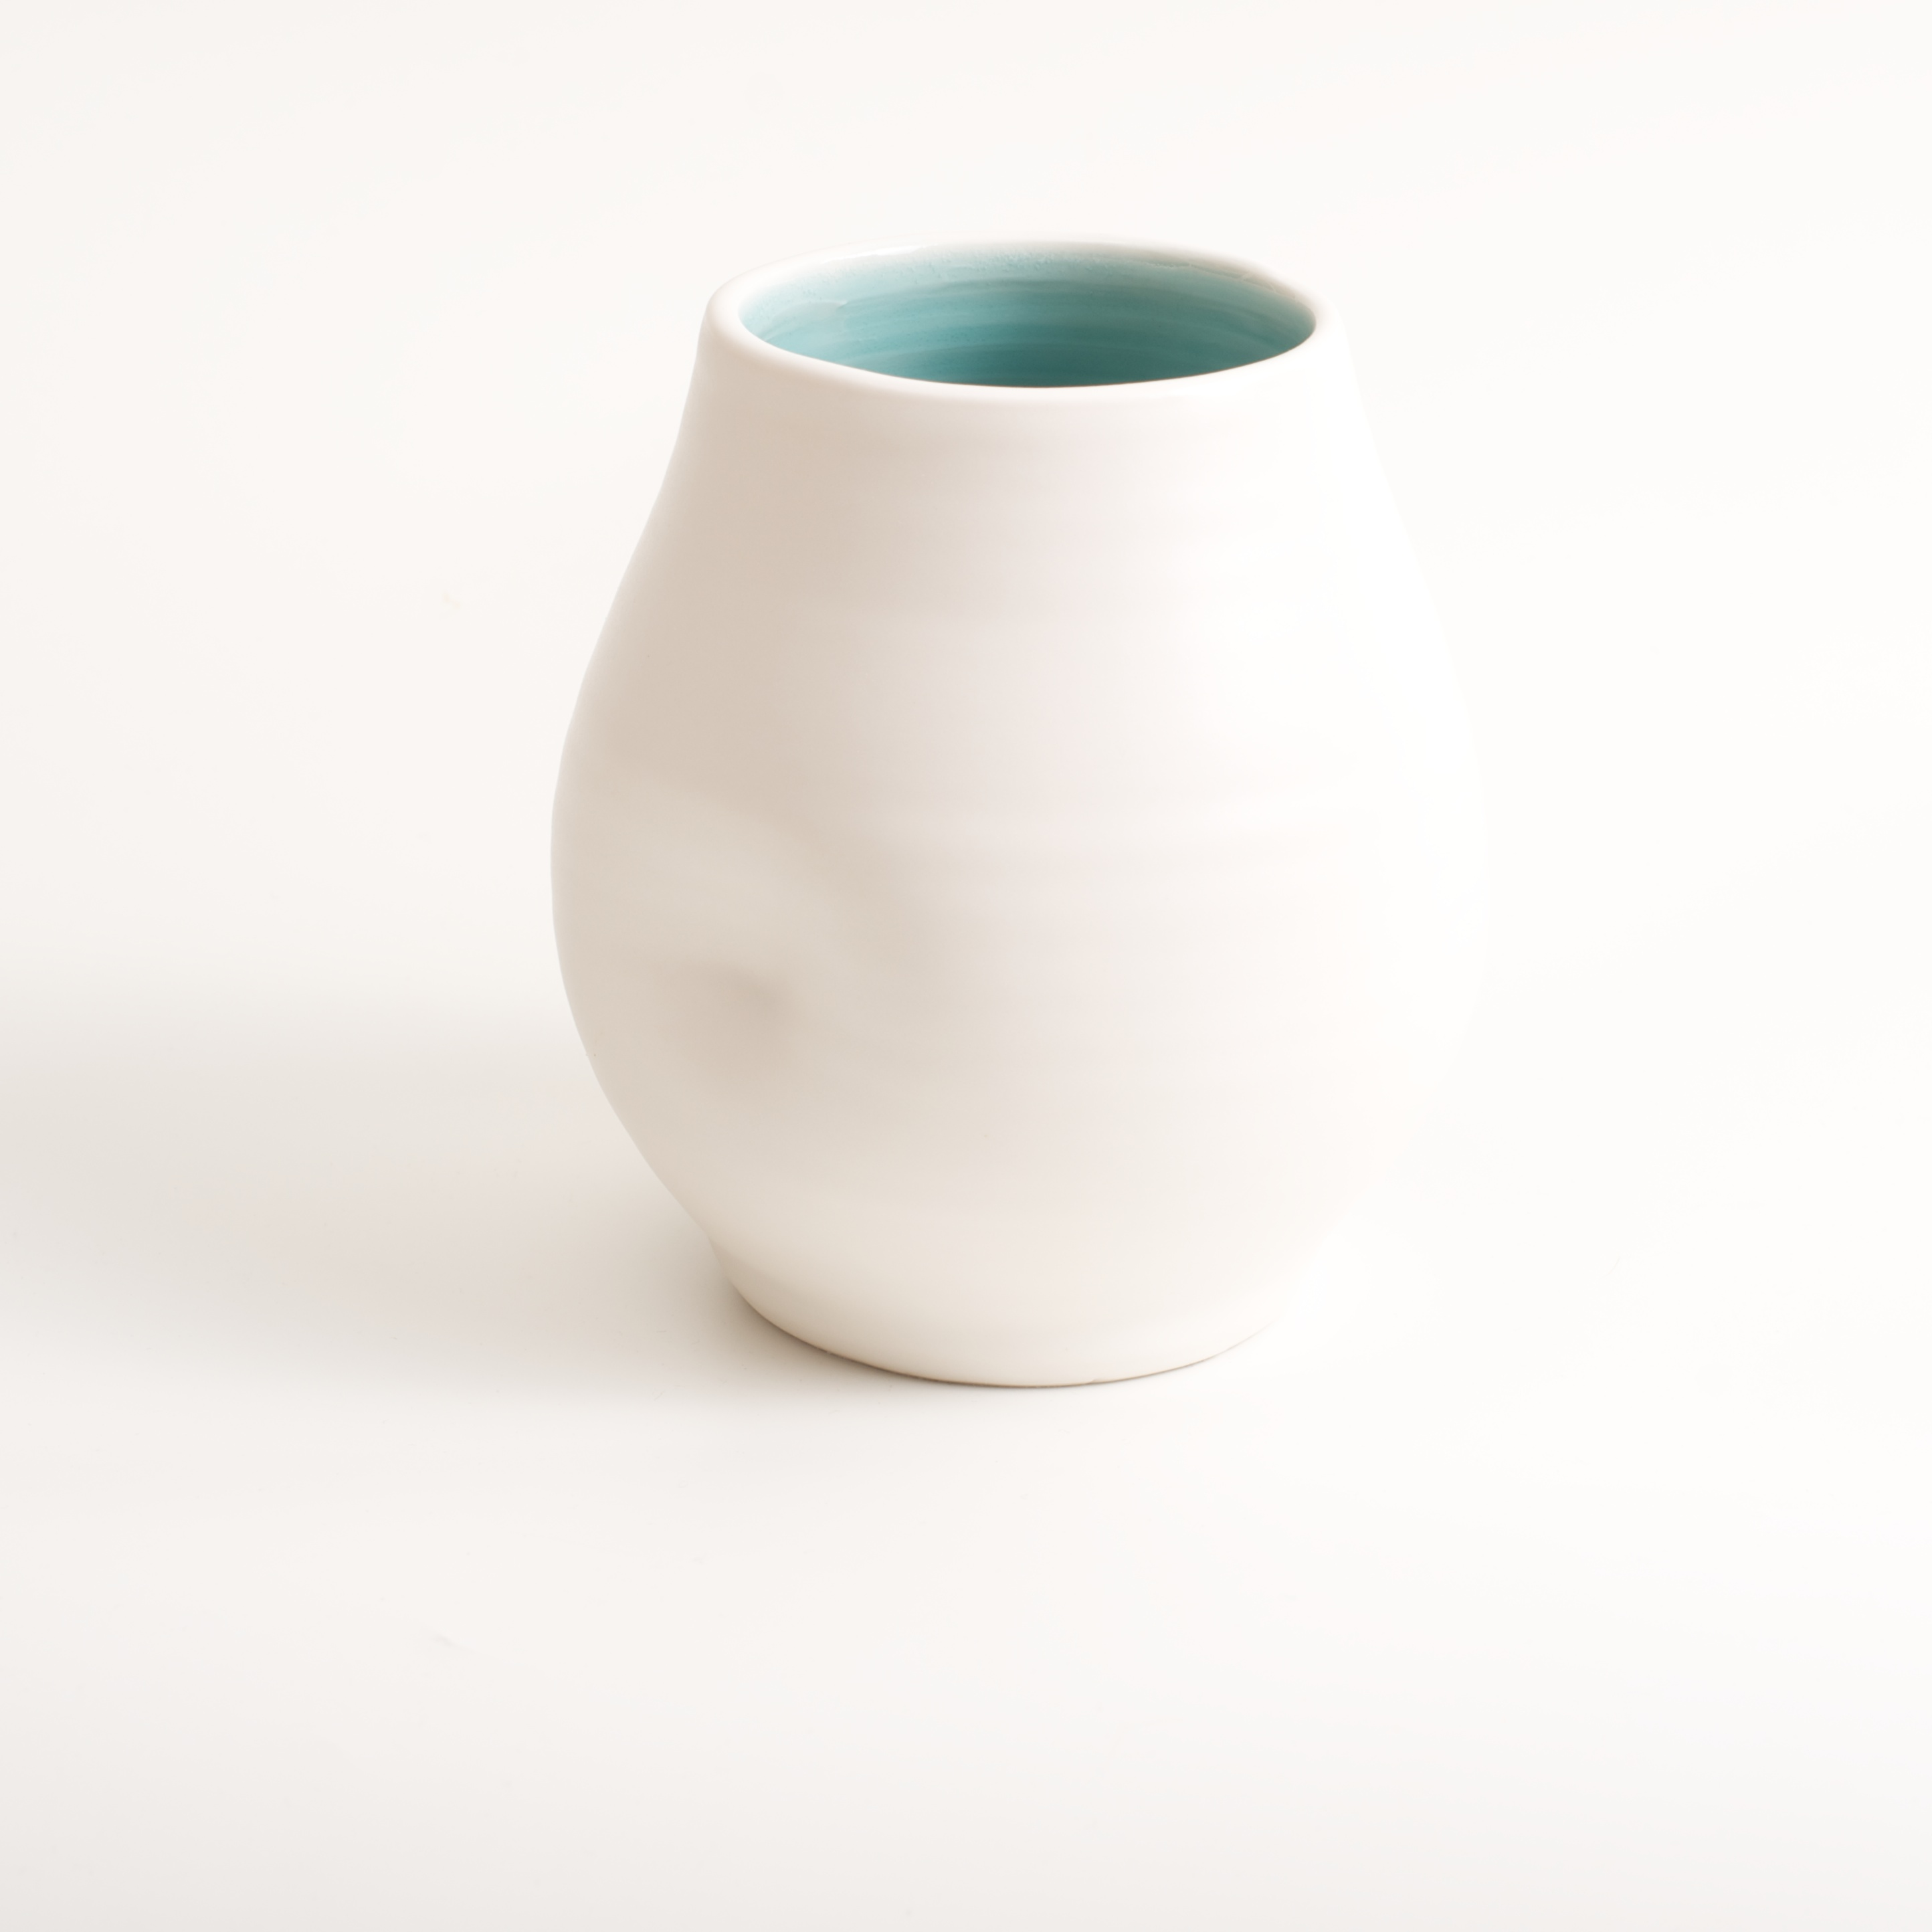 handmade- porcelain- vase -dimpled- turquoise